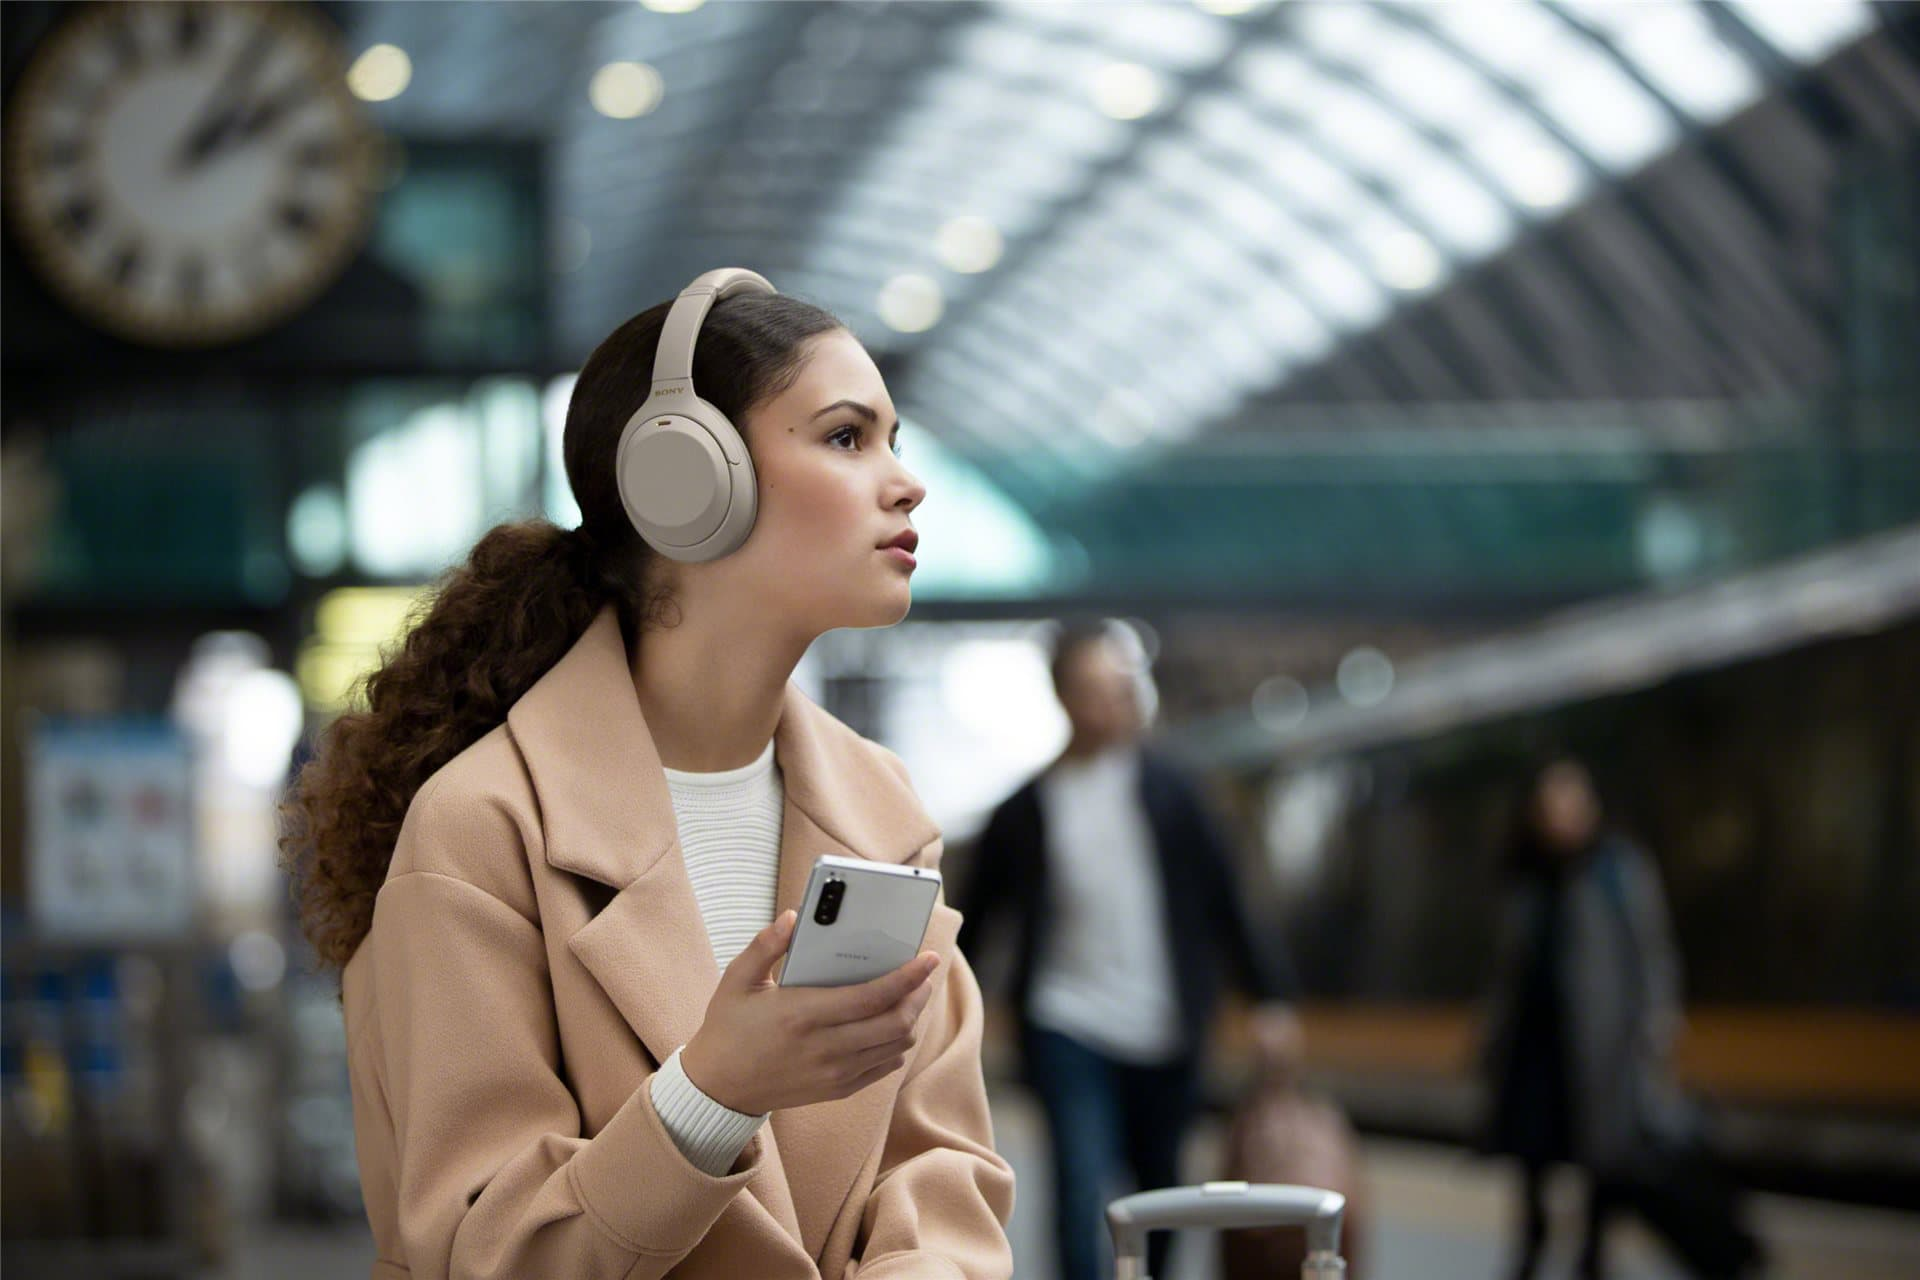 Sony announced the 4th generation of its most popular noise cancelling headphones, the WH-1000XM4